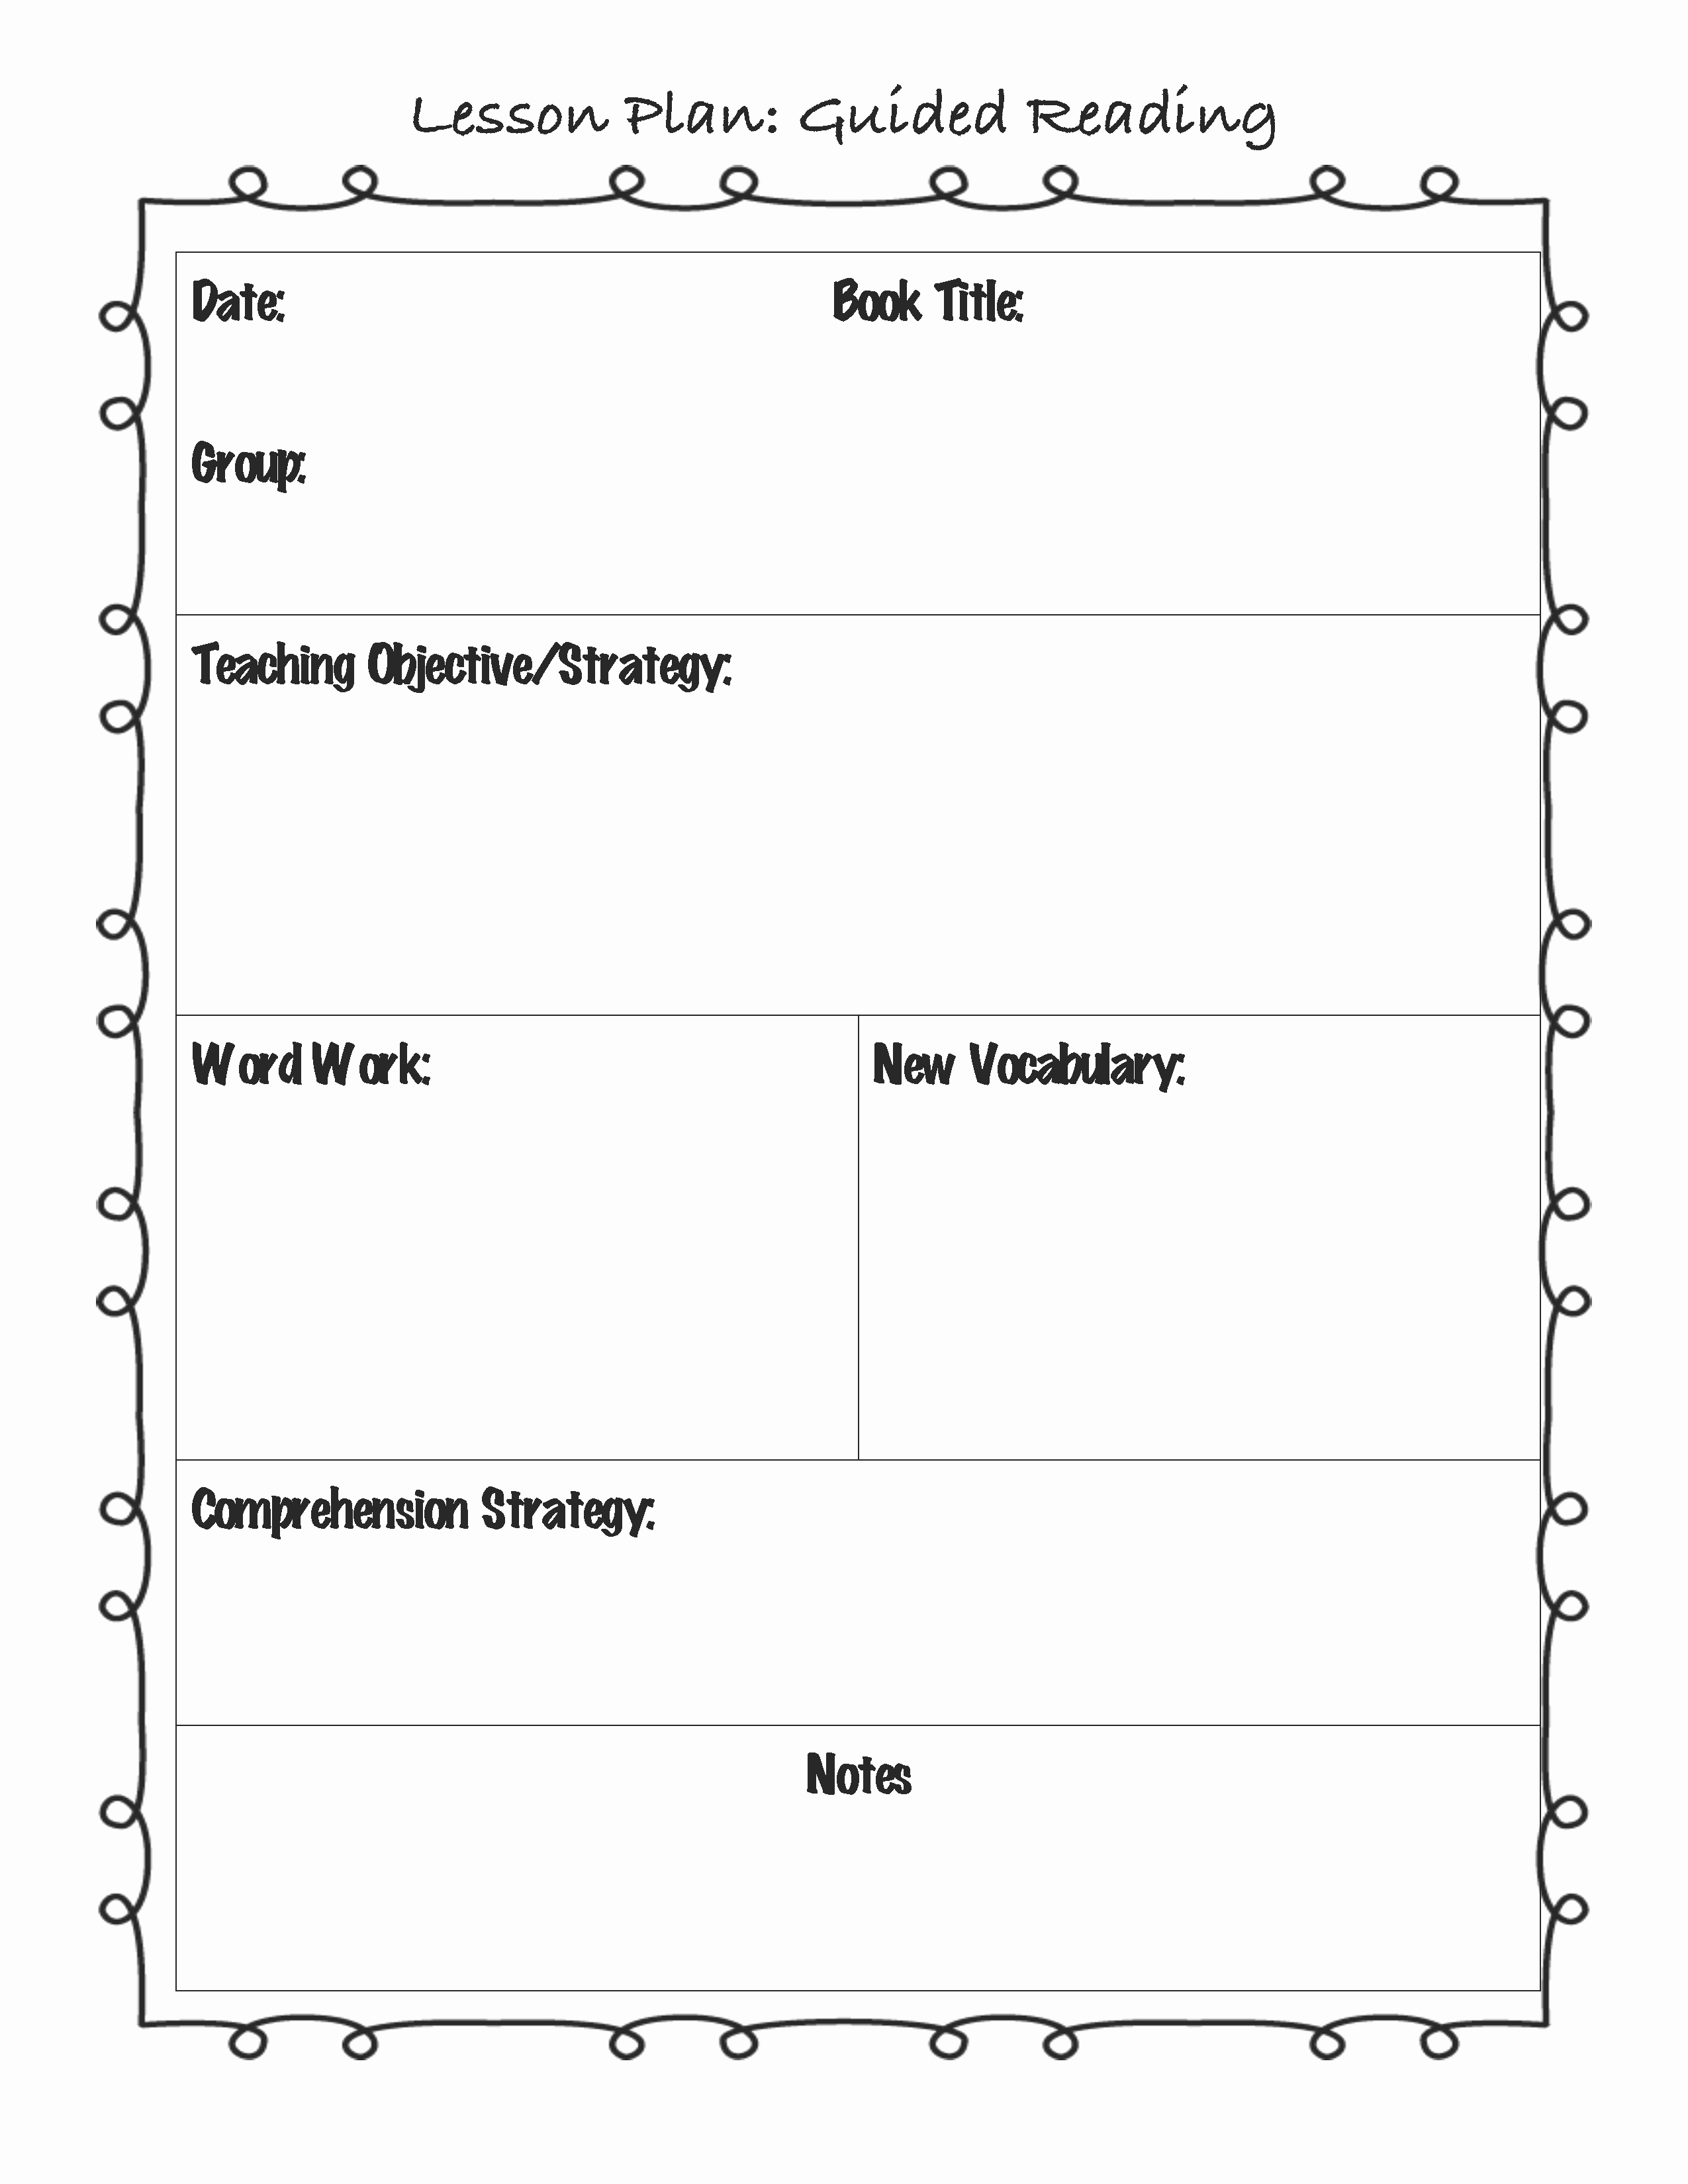 Simple Lesson Plan Template Fresh Guided Reading Lesson Plan Template